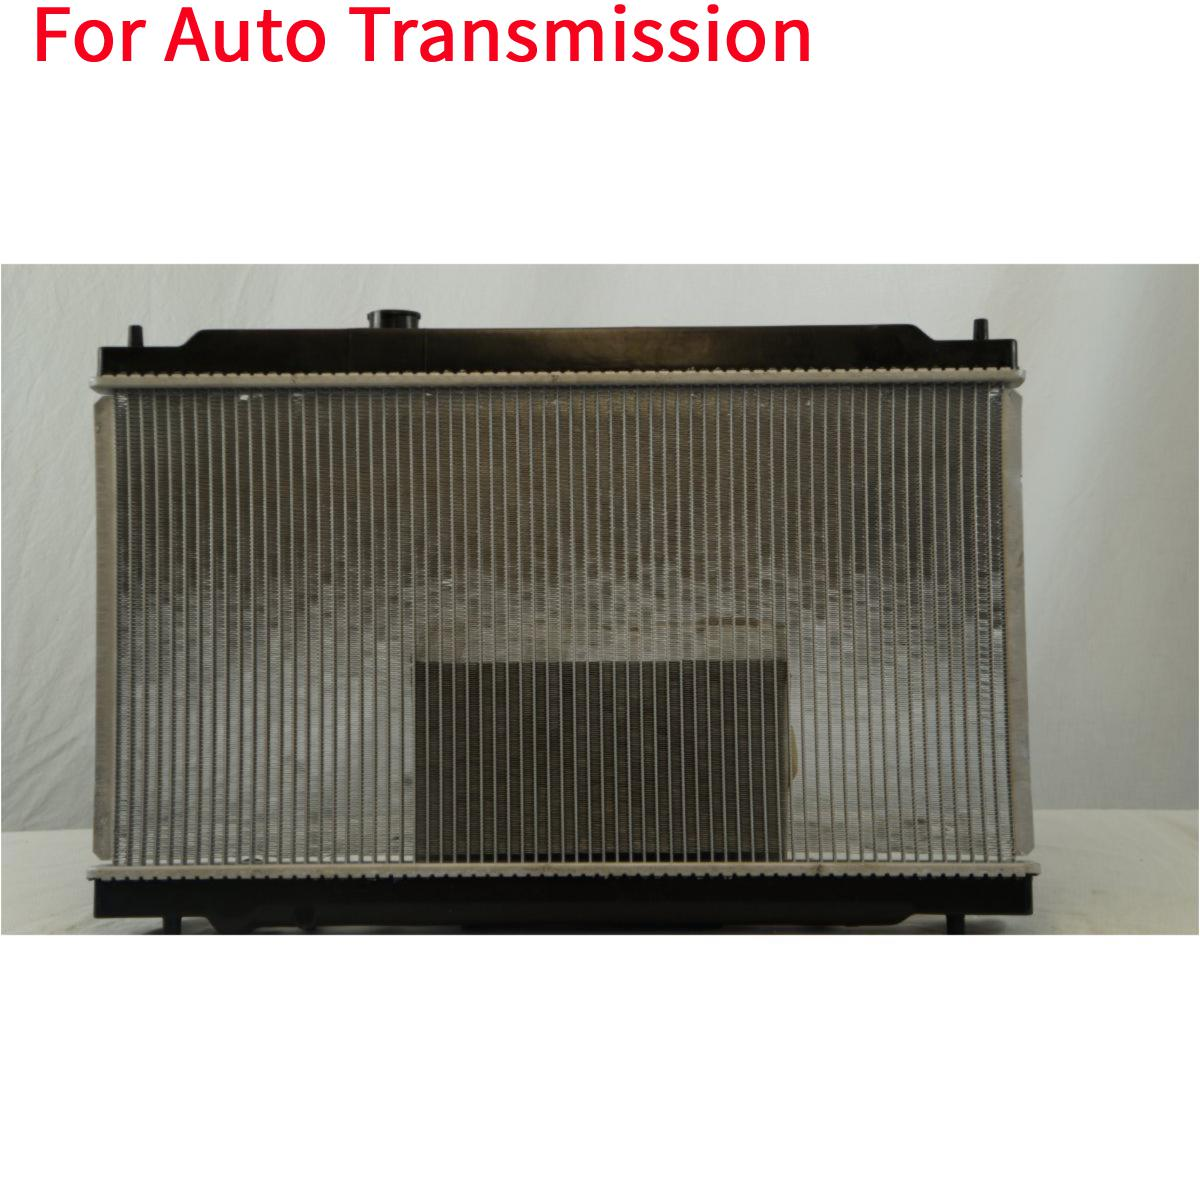 AT Aluminum/Plastic Radiator 1 Row For 1994-2001 Acura